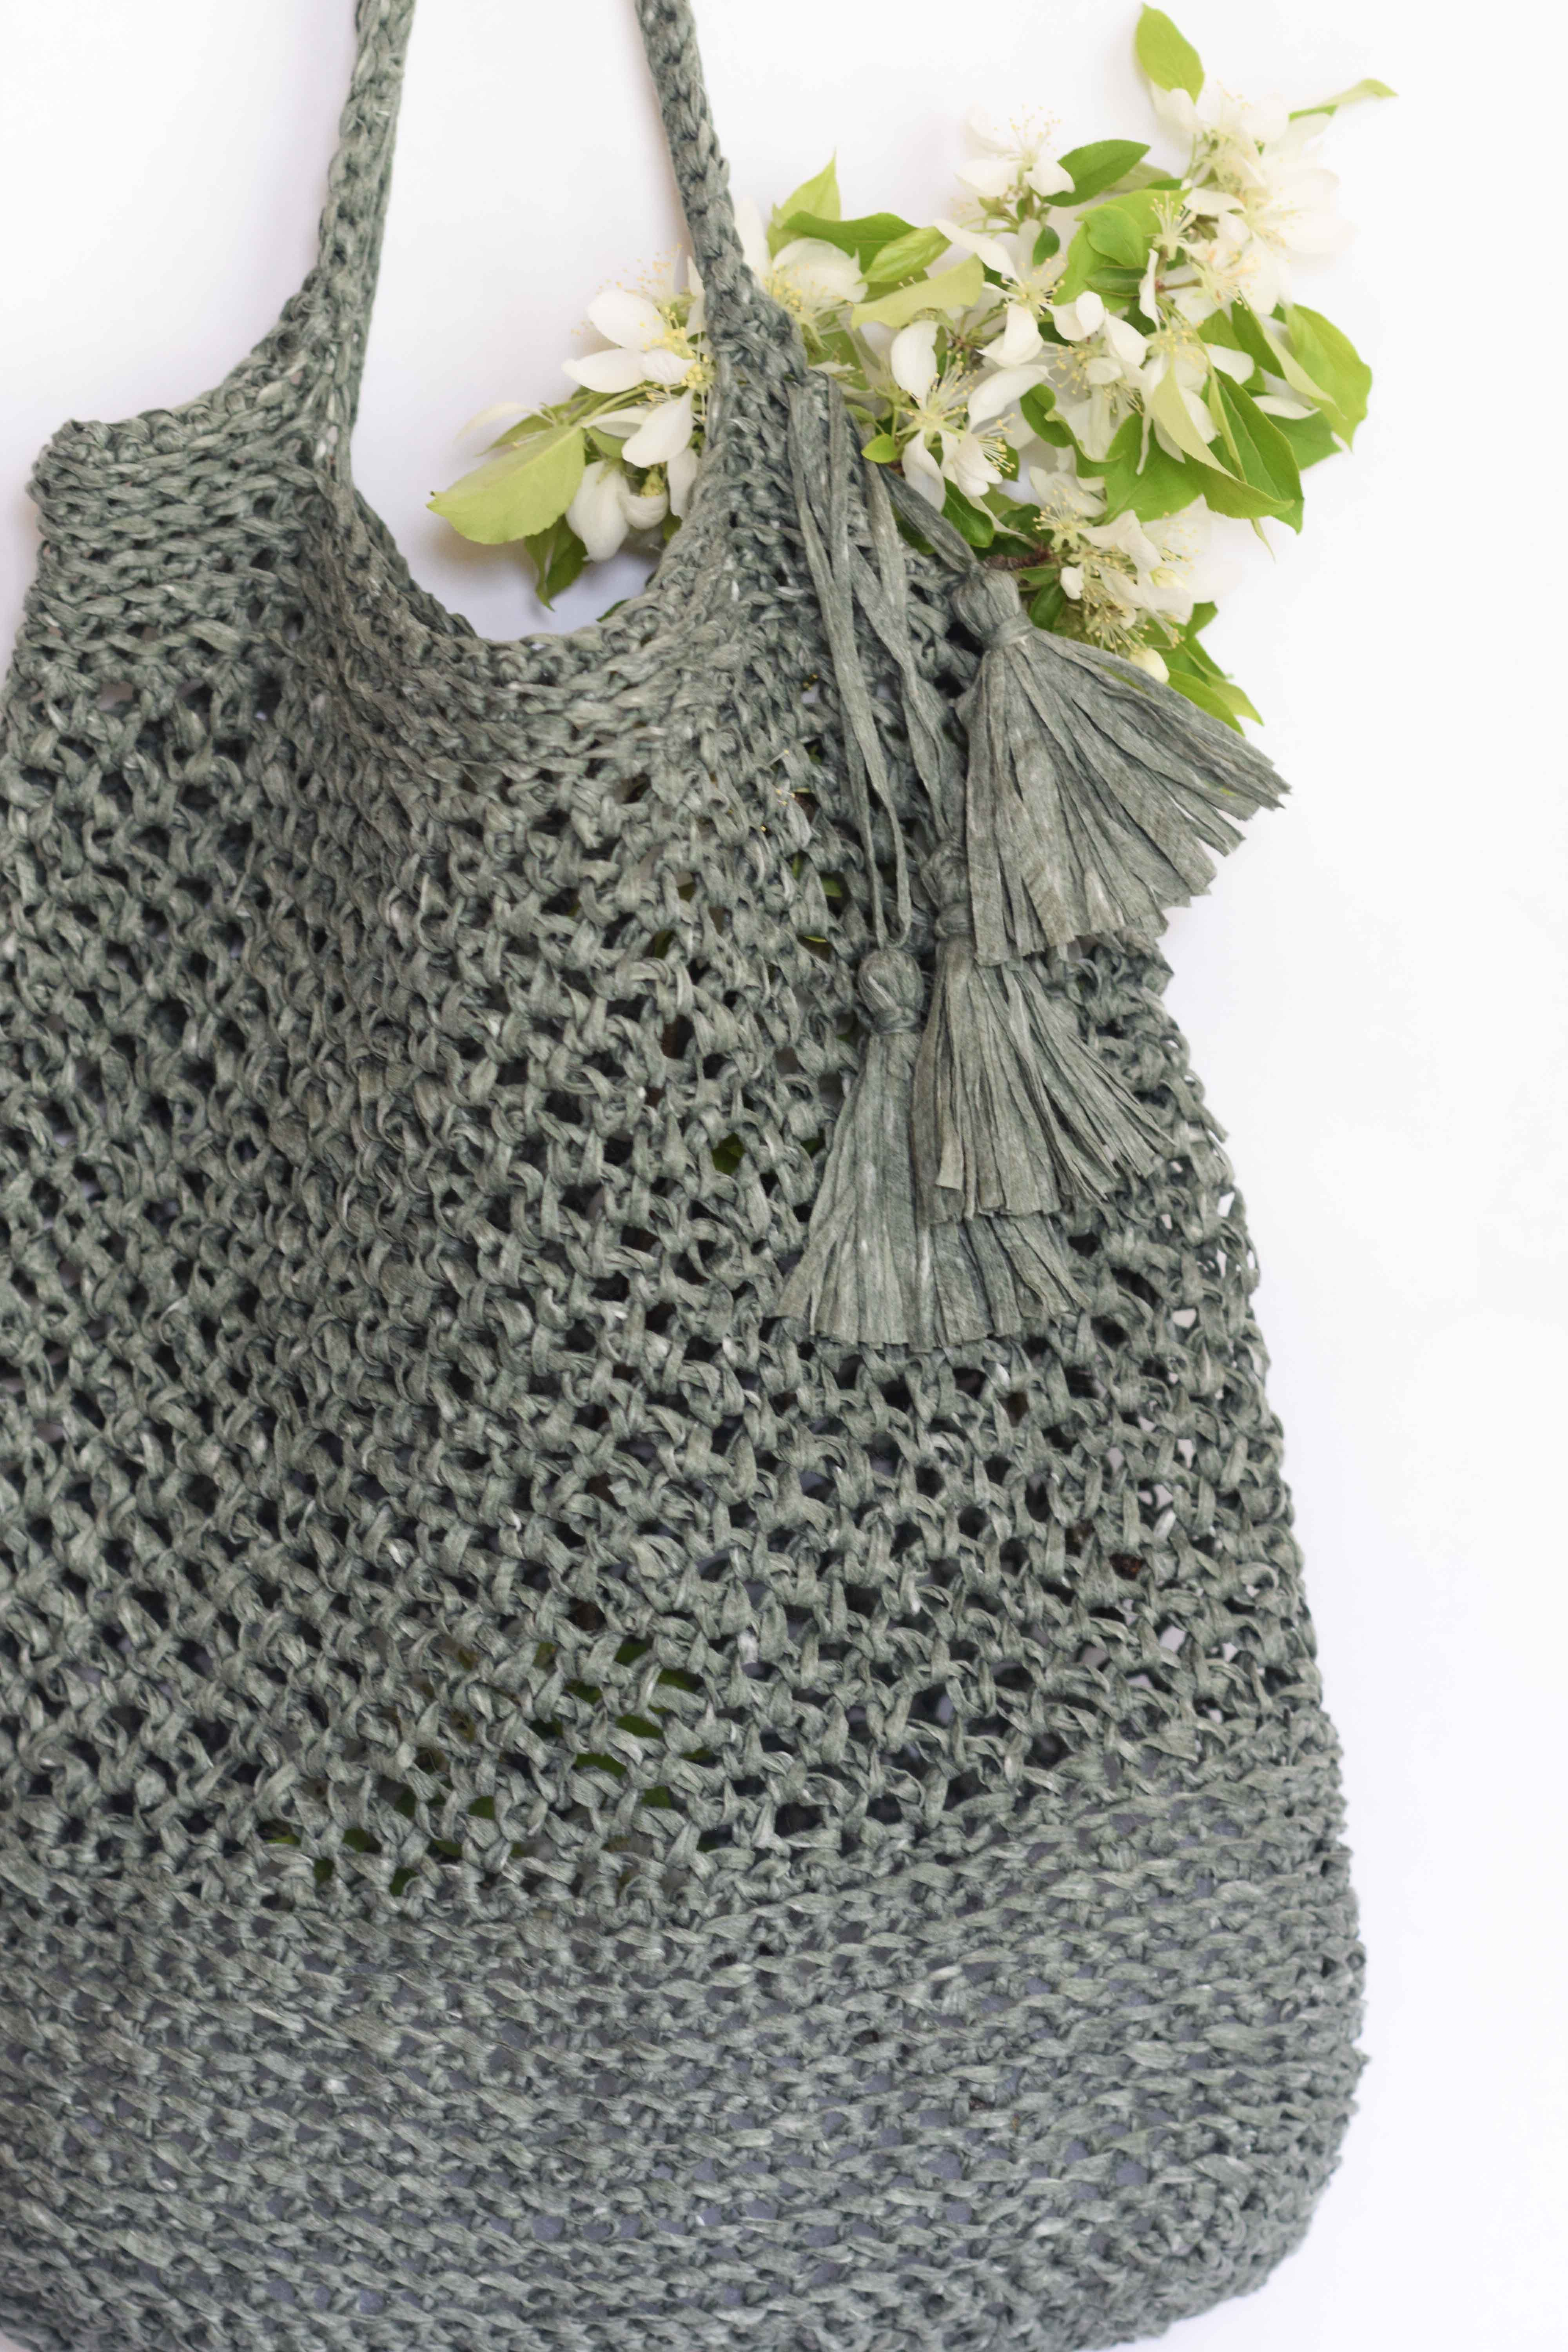 Tote Bag Patterns and Ideas that You Will Adore Easy Crochet Knit Bag Patterns Mama In A Stitch